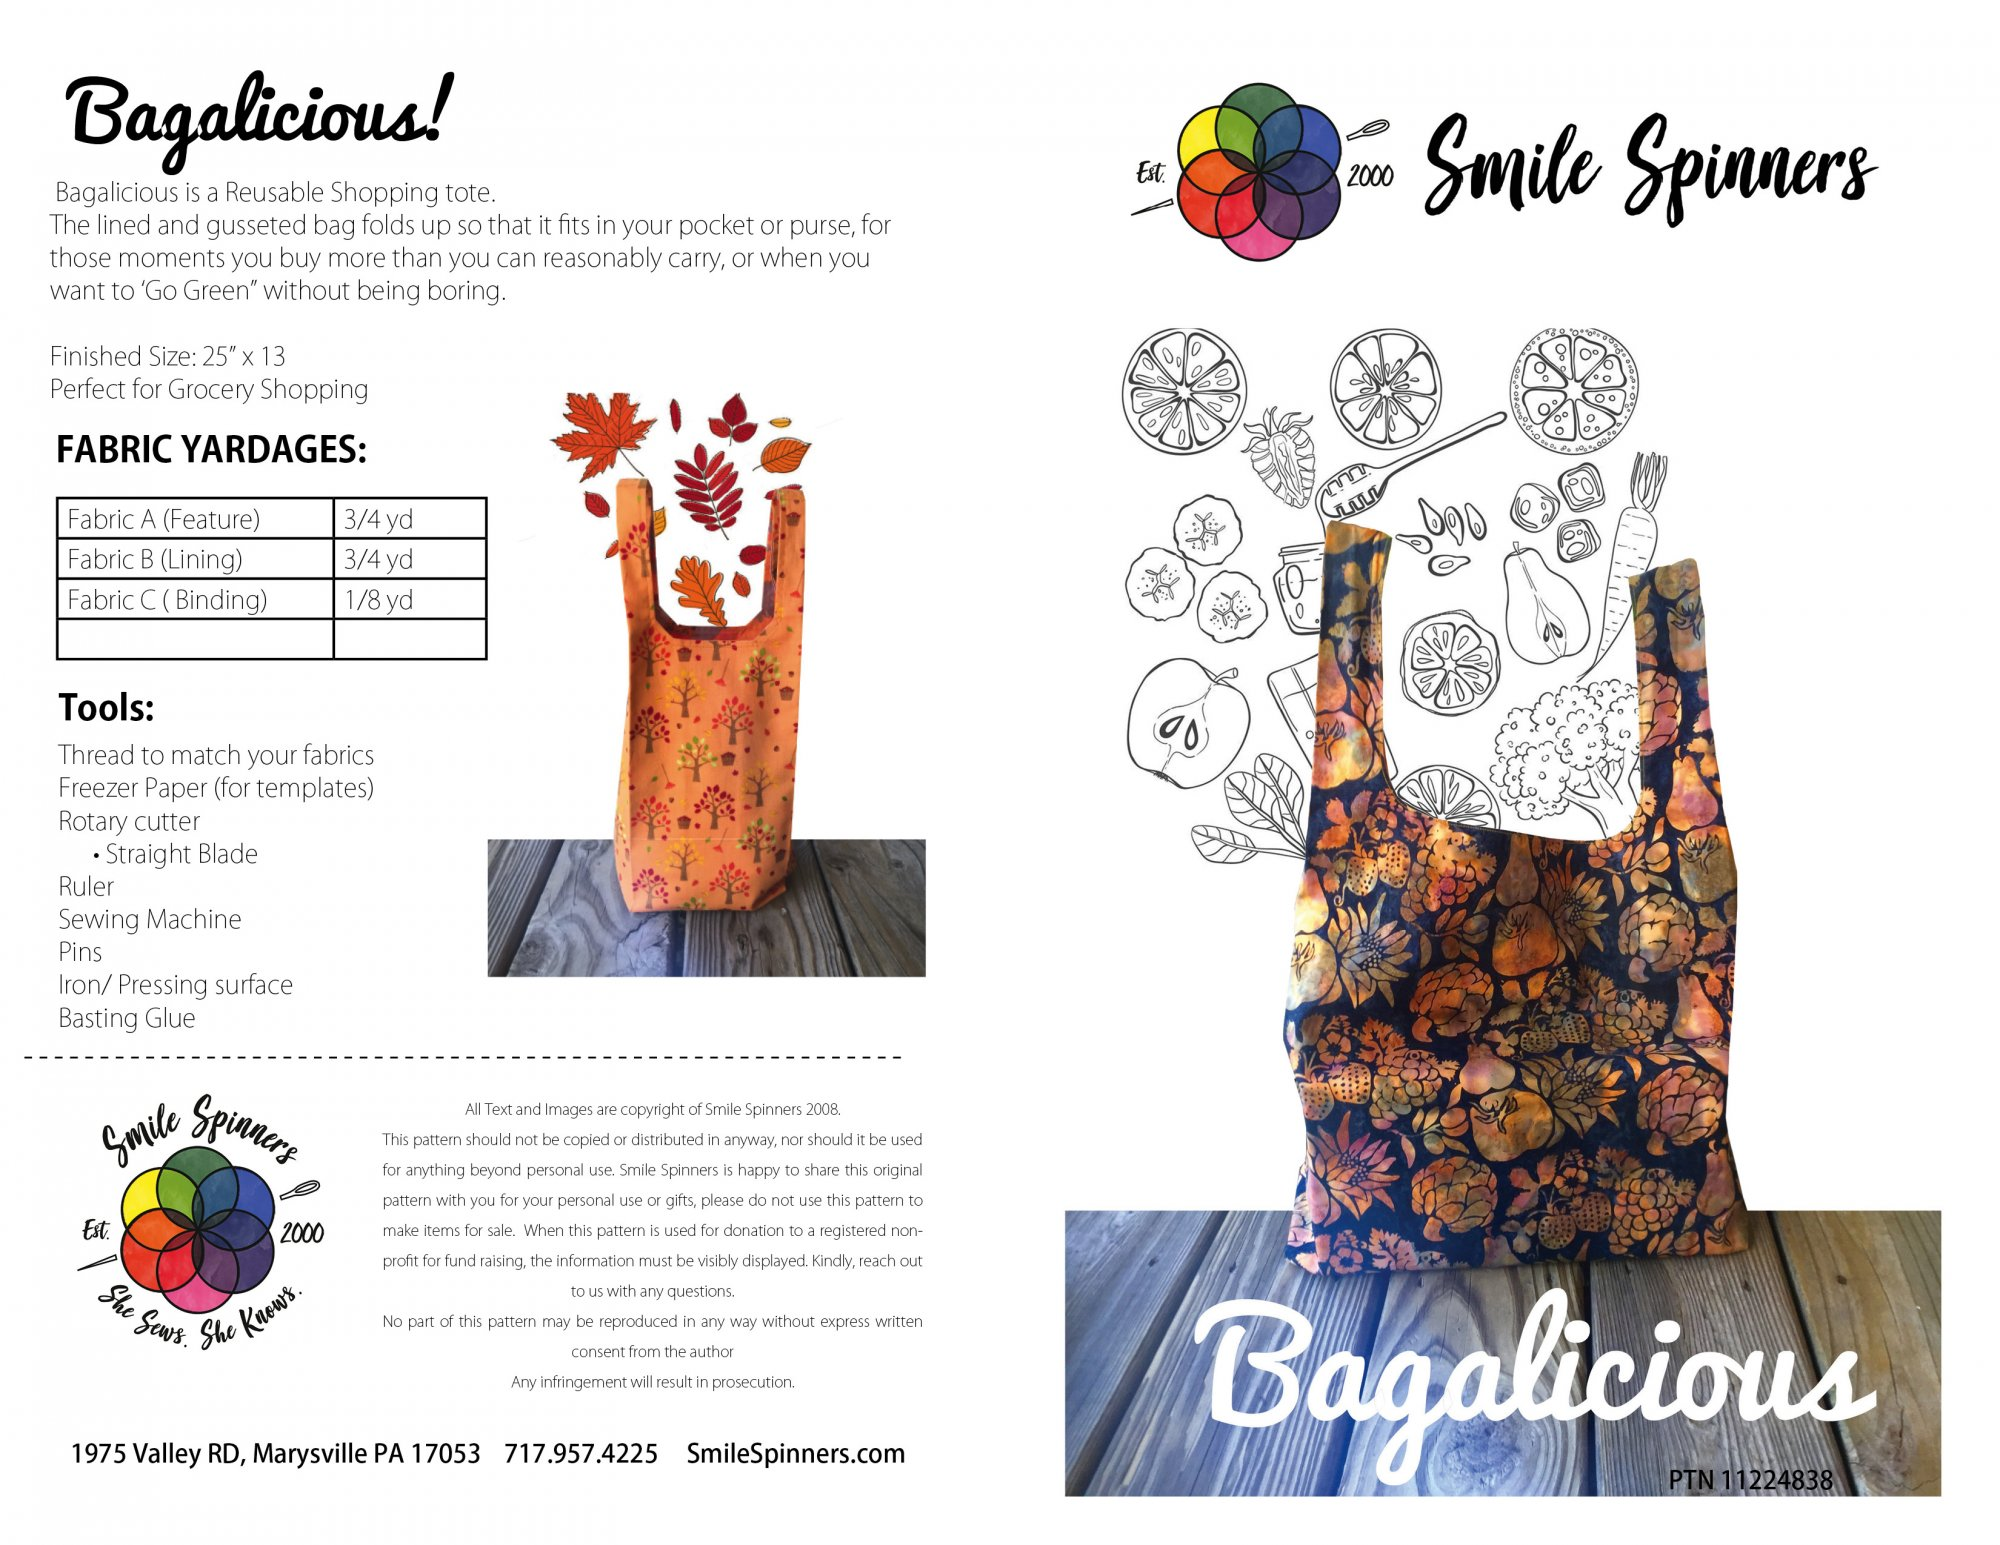 Bagalicious Shopping Tote - PRINTED COPY